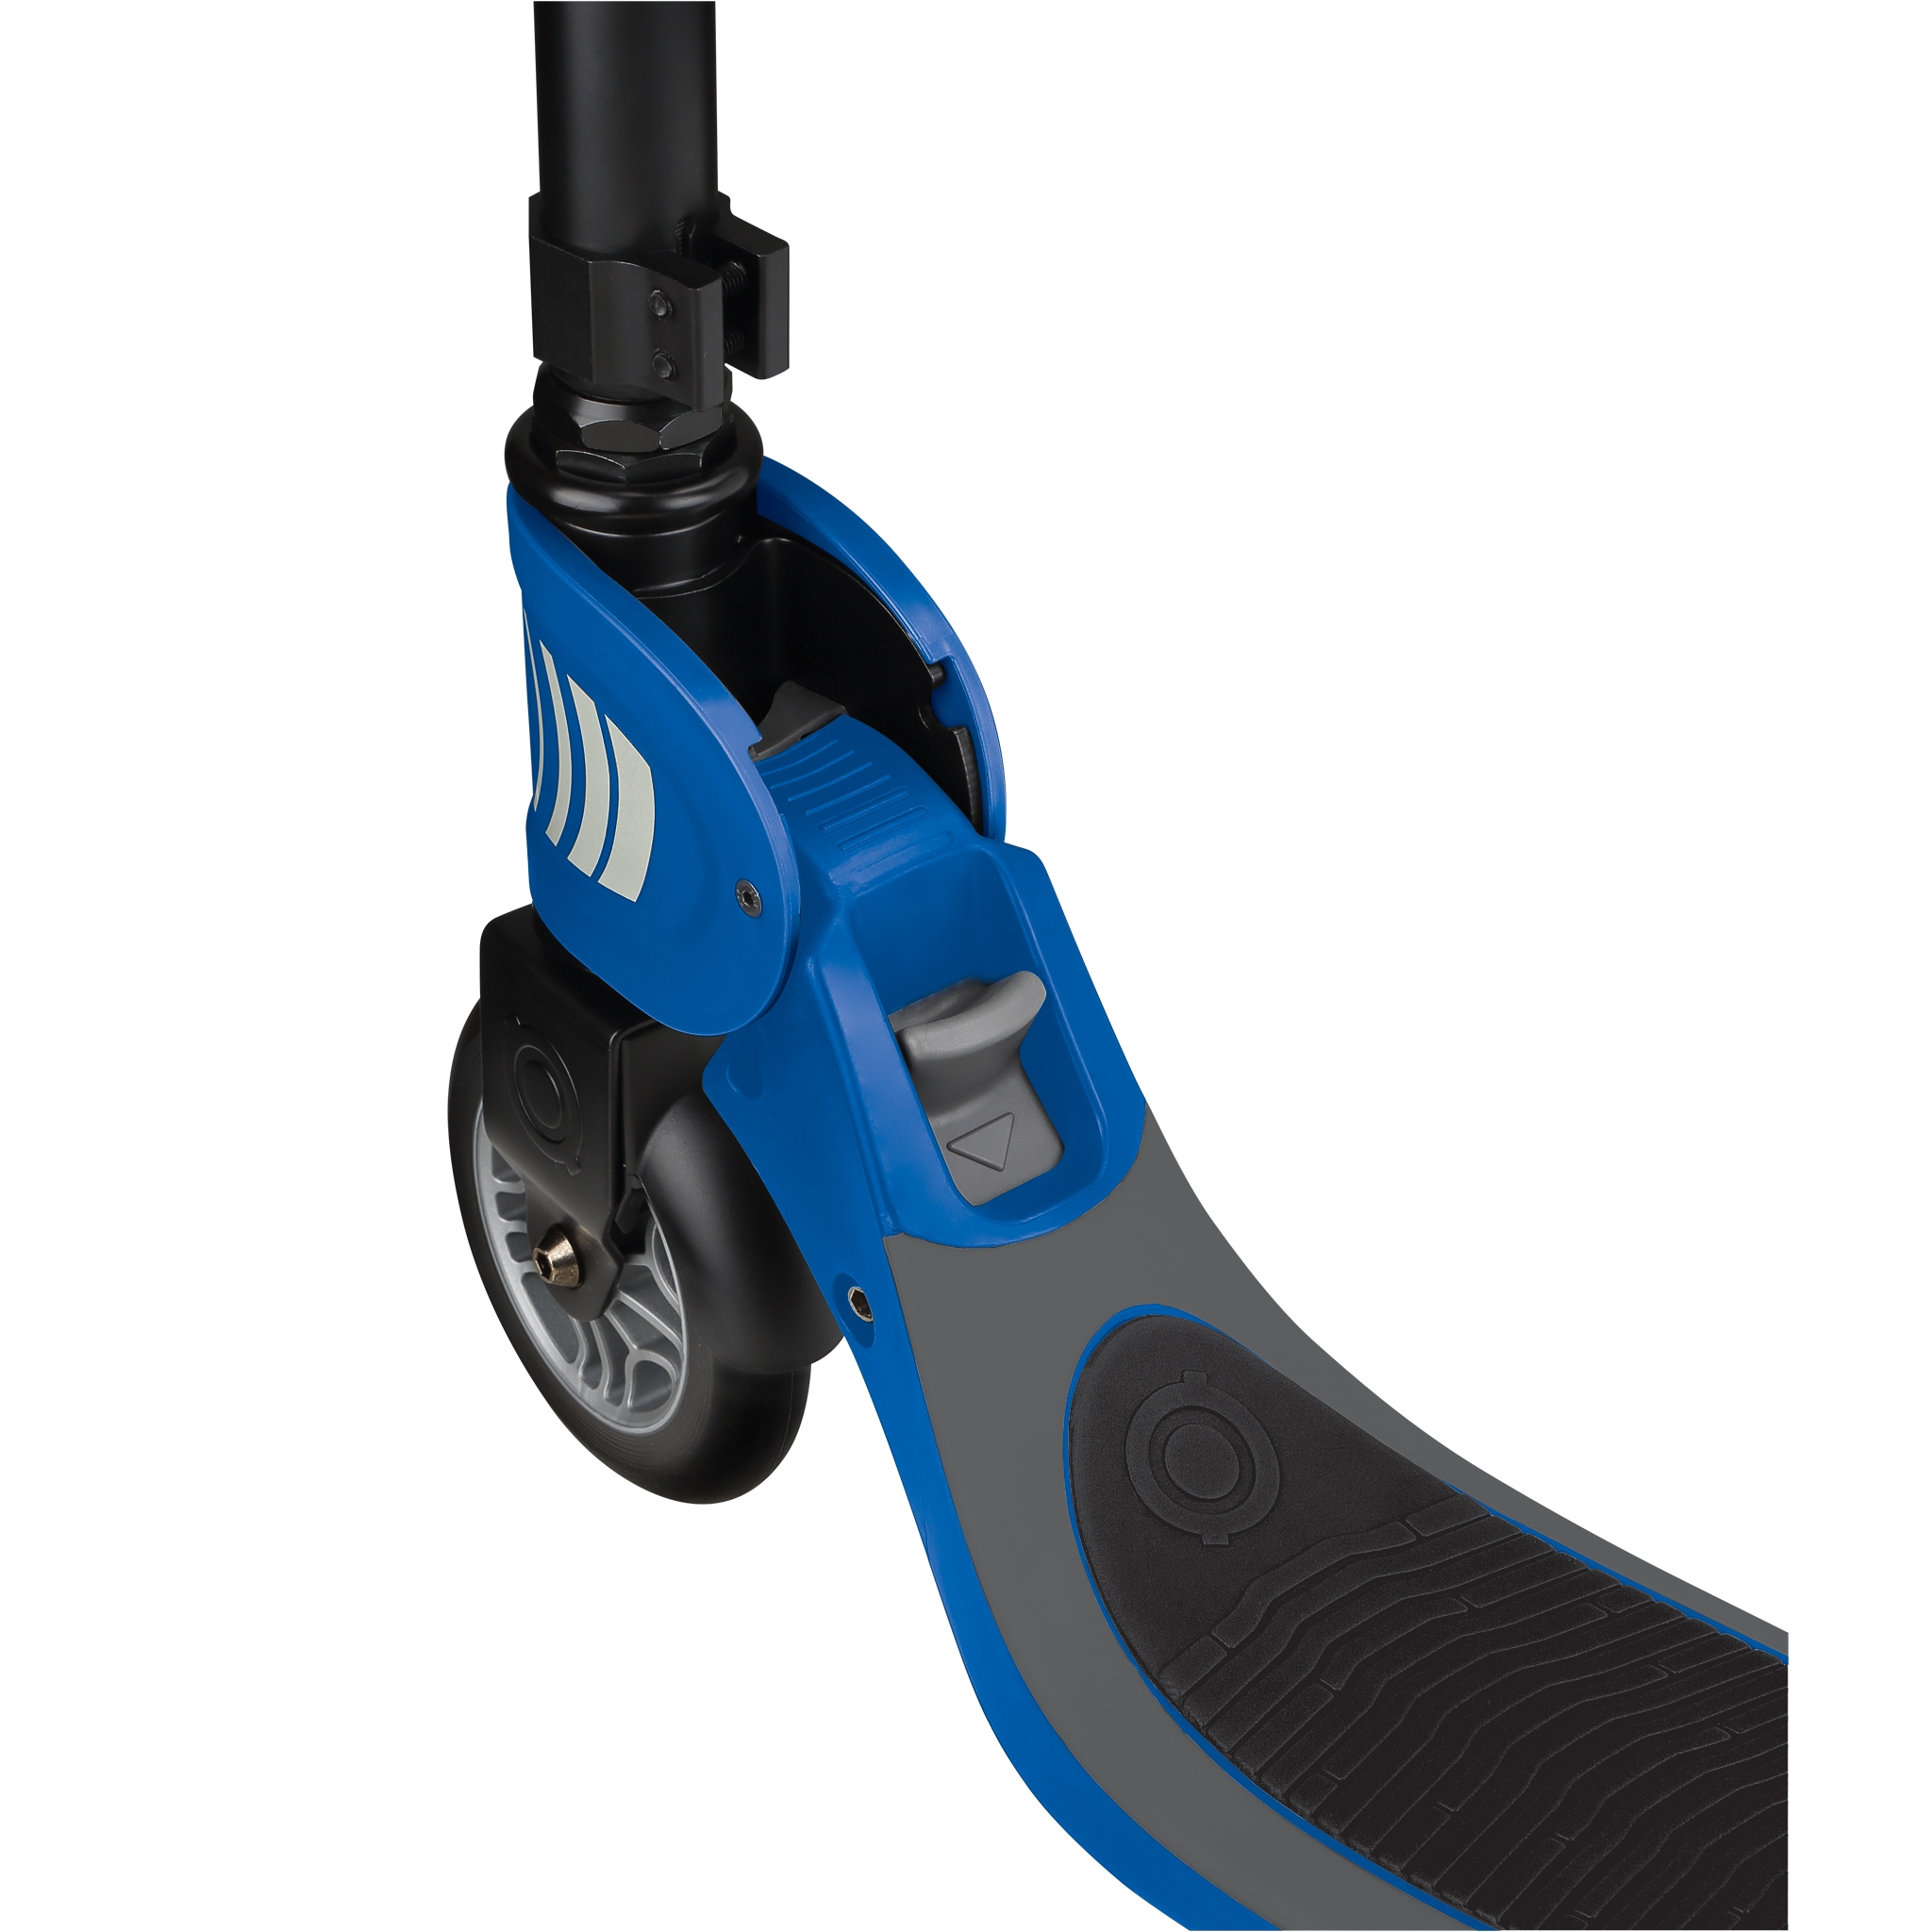 FLOW-FOLDABLE-125-2-wheel-folding-scooter-with-push-button-navy-blue